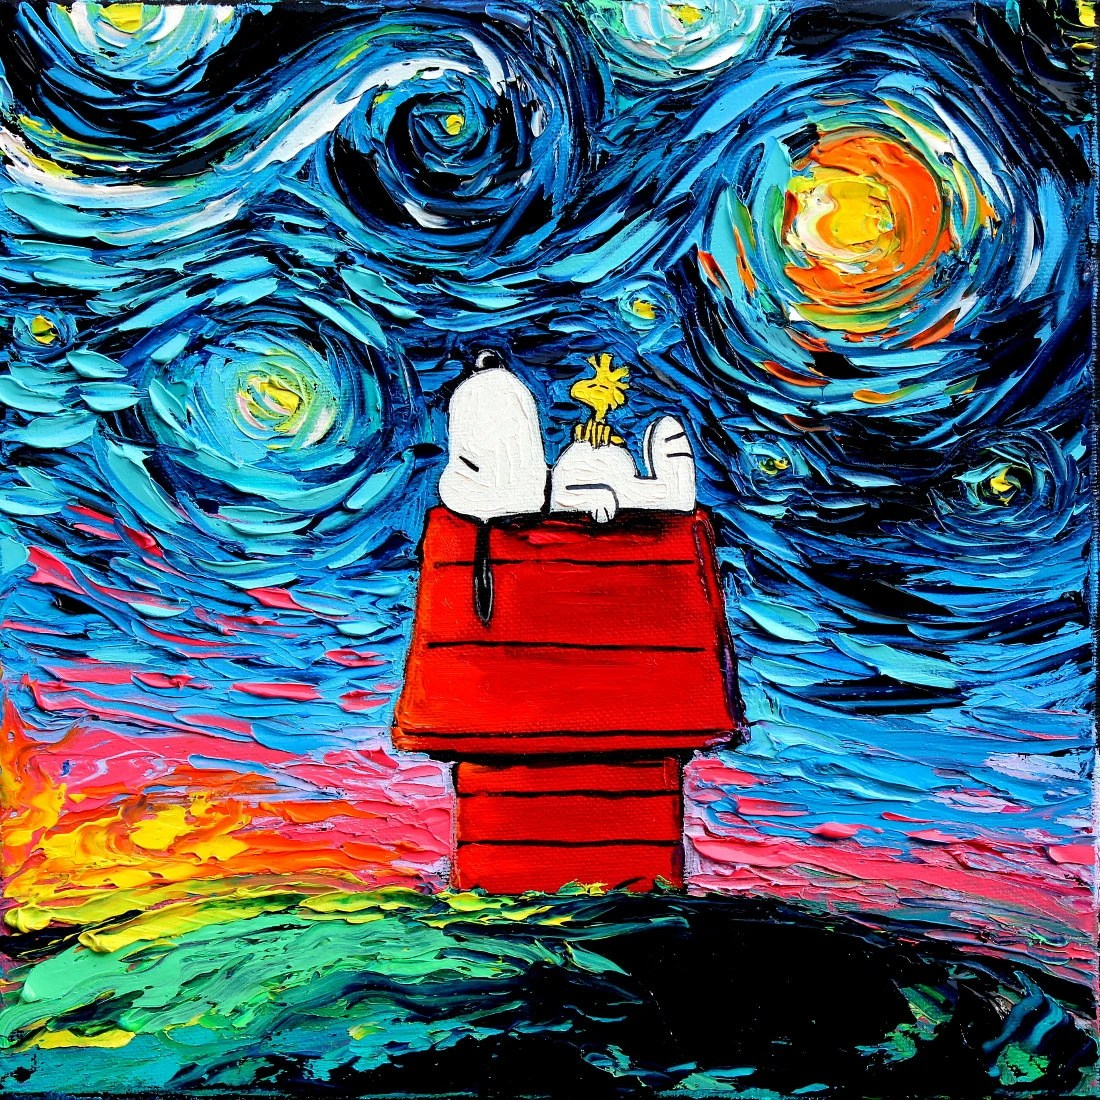 Cuadros De Vango Snoopy Art Peanuts Cartoon Starry Night Print Van Gogh Never